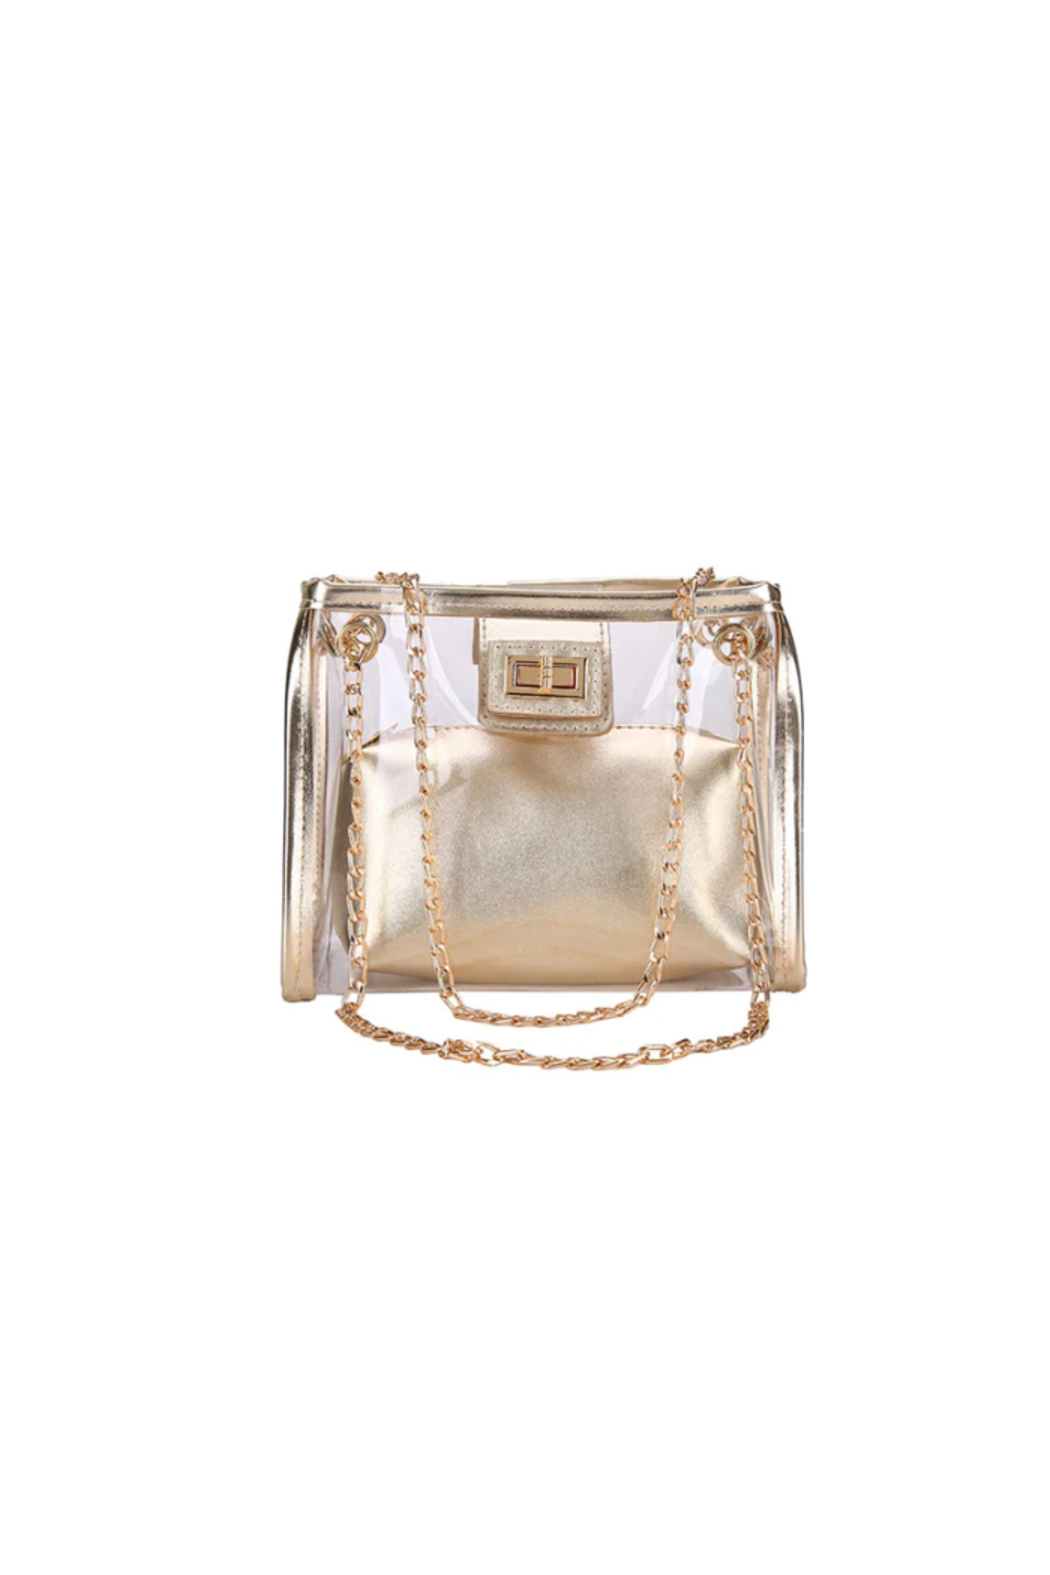 The Birds Nest CLEAR/GOLD GAMEDAY PURSE - Main Image